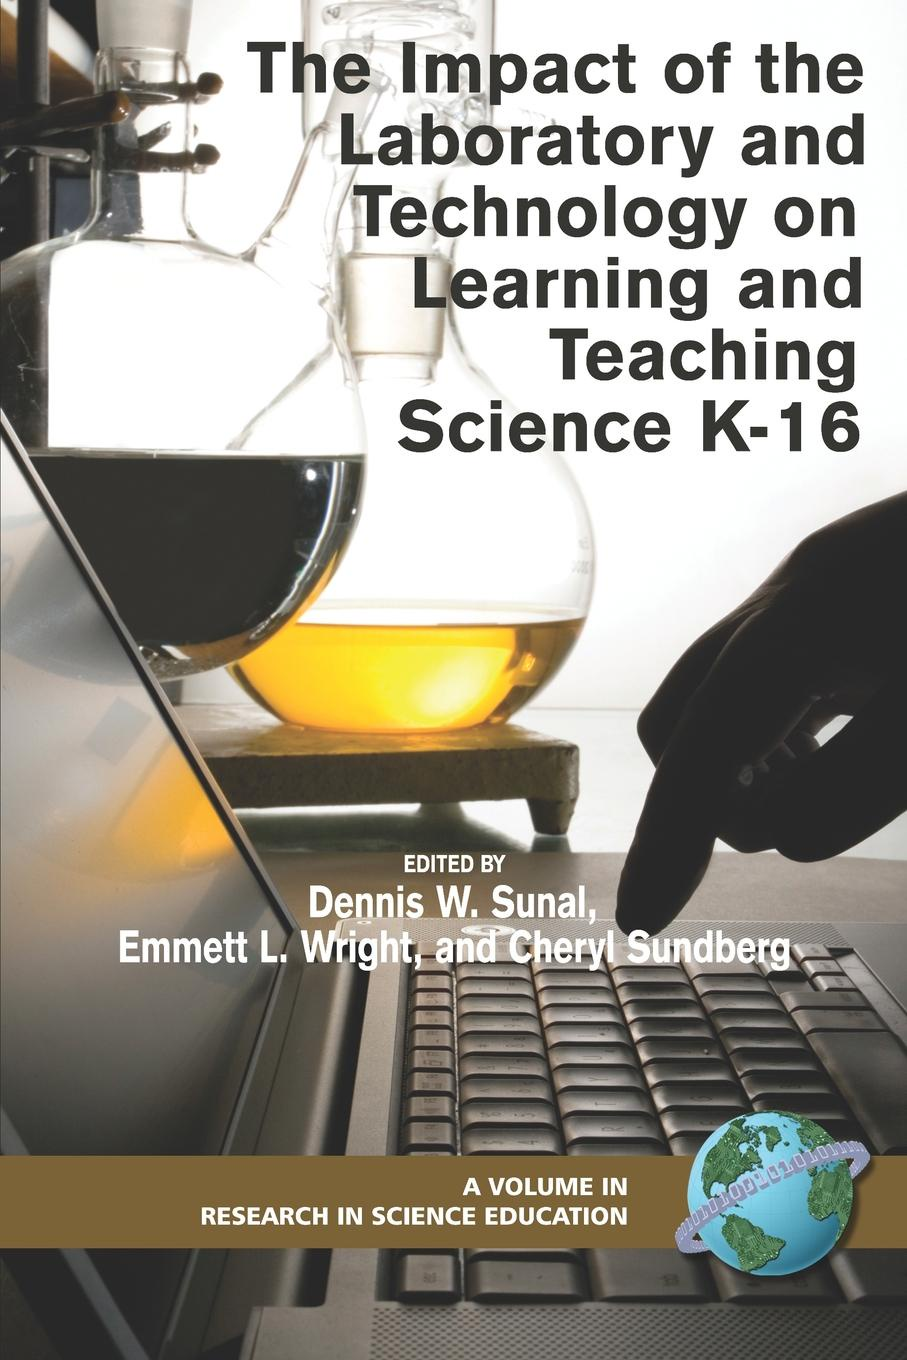 The Impact of the Laboratory and Technology on Learning and Teaching Science K-16 (PB)